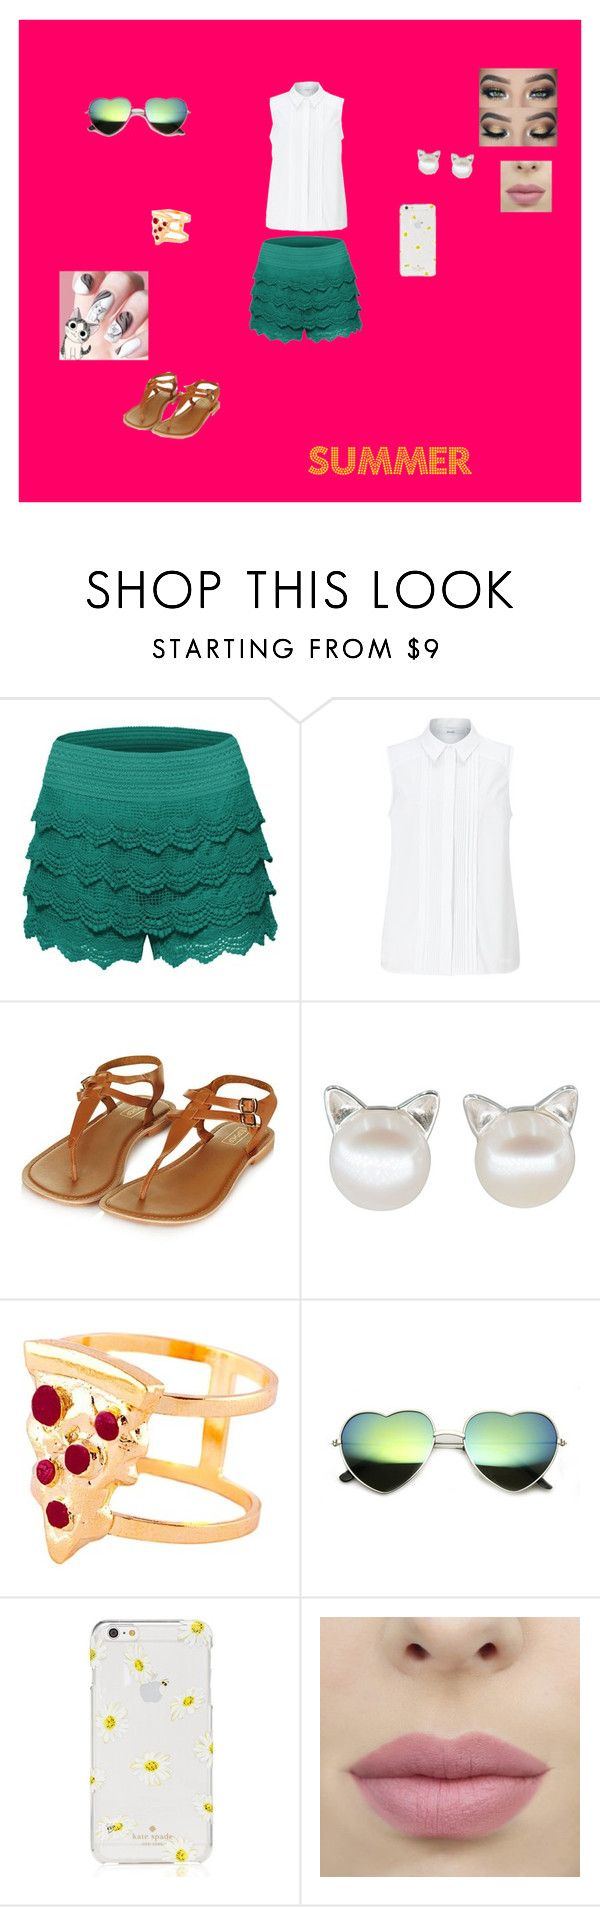 """""""Ready for summer <3"""" by e-ramsey ❤ liked on Polyvore featuring John Lewis, Glenda López and Kate Spade"""